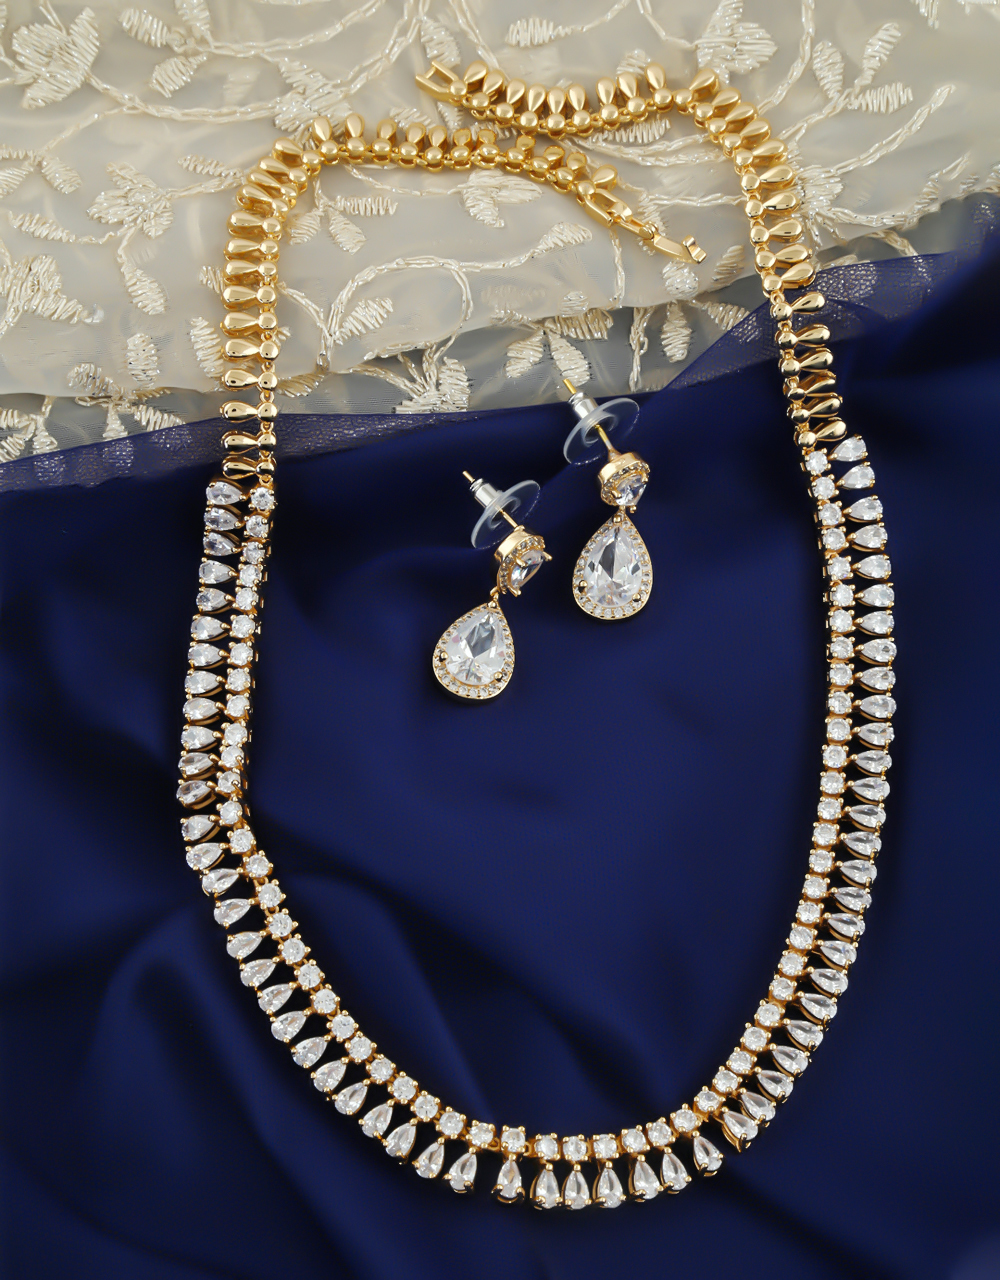 Gold Finish Fancy Stunning Diamond Necklace For Girls